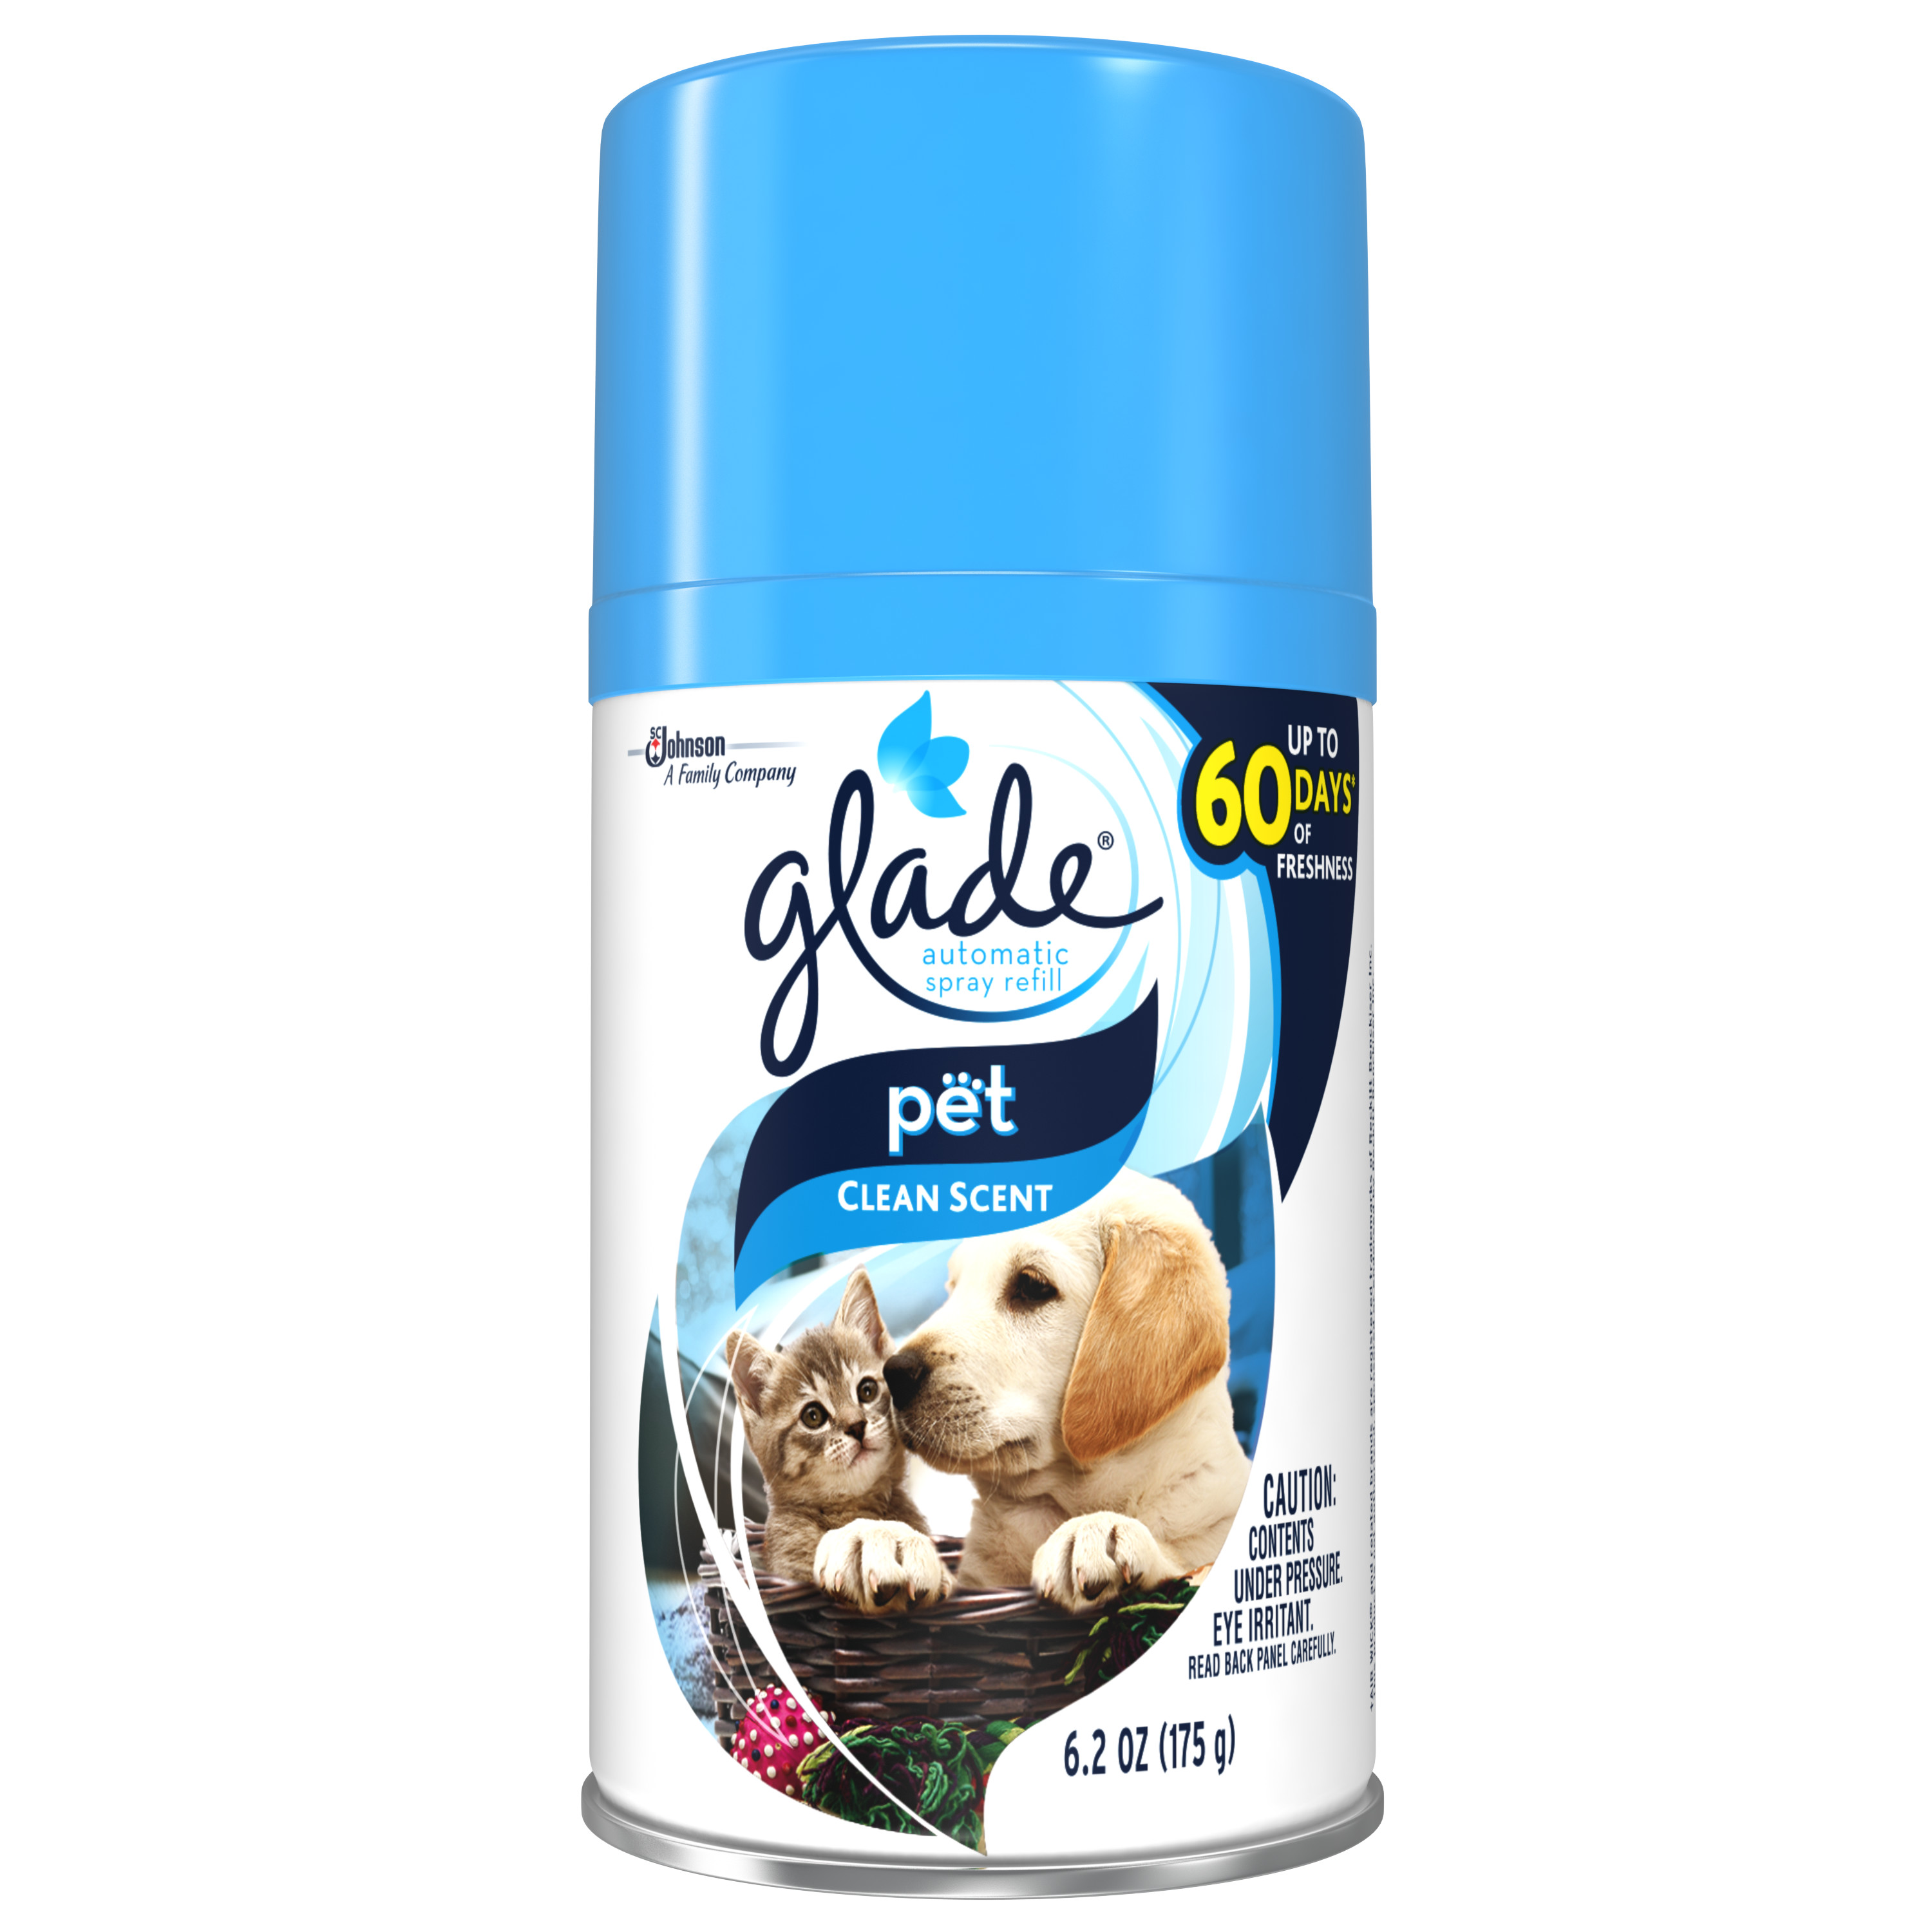 Glade Automatic Spray Air Freshener Refill, Pet Clean Scent, 6.2 Ounces